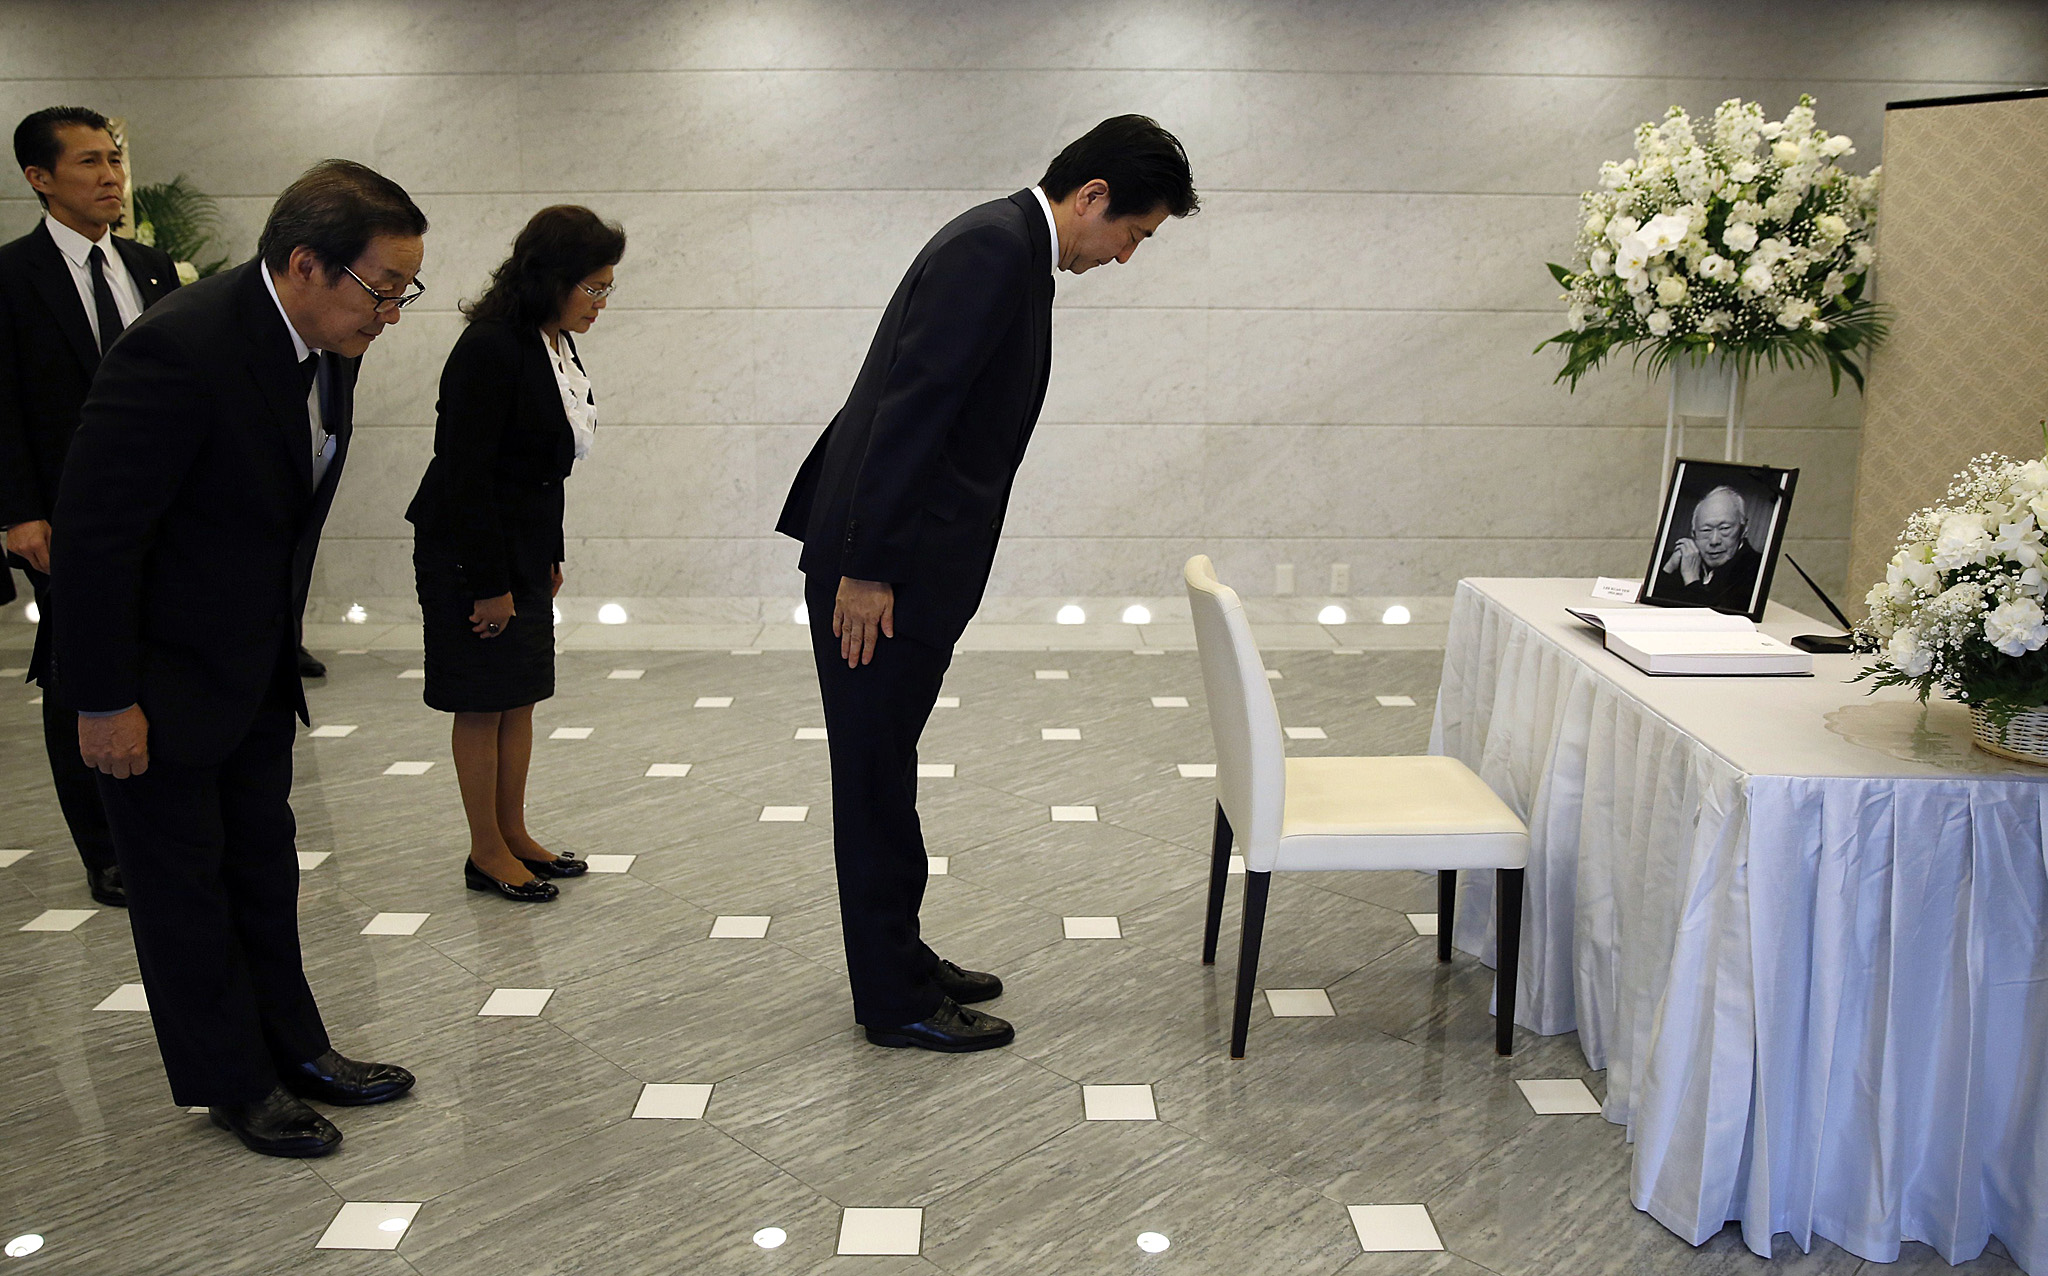 Japan's Prime Minister Shinzo Abe (R) bo...Japan's Prime Minister Shinzo Abe (R) bows with Singapore Ambassador to Japan Chin Siat Yoon (front L) and his wife Wang Lee Moi (3rd R) after signing a condolence book for the late former Singapore prime minister Lee Kuan Yew at the Singapore Embassy in Tokyo on March 24, 2015. Singapore's first prime minister Lee Kuan Yew, one of the towering figures of post-colonial Asian politics, died at the age of 91 on March 23.     AFP PHOTO / POOL / Toru HanaiTORU HANAI/AFP/Getty Images